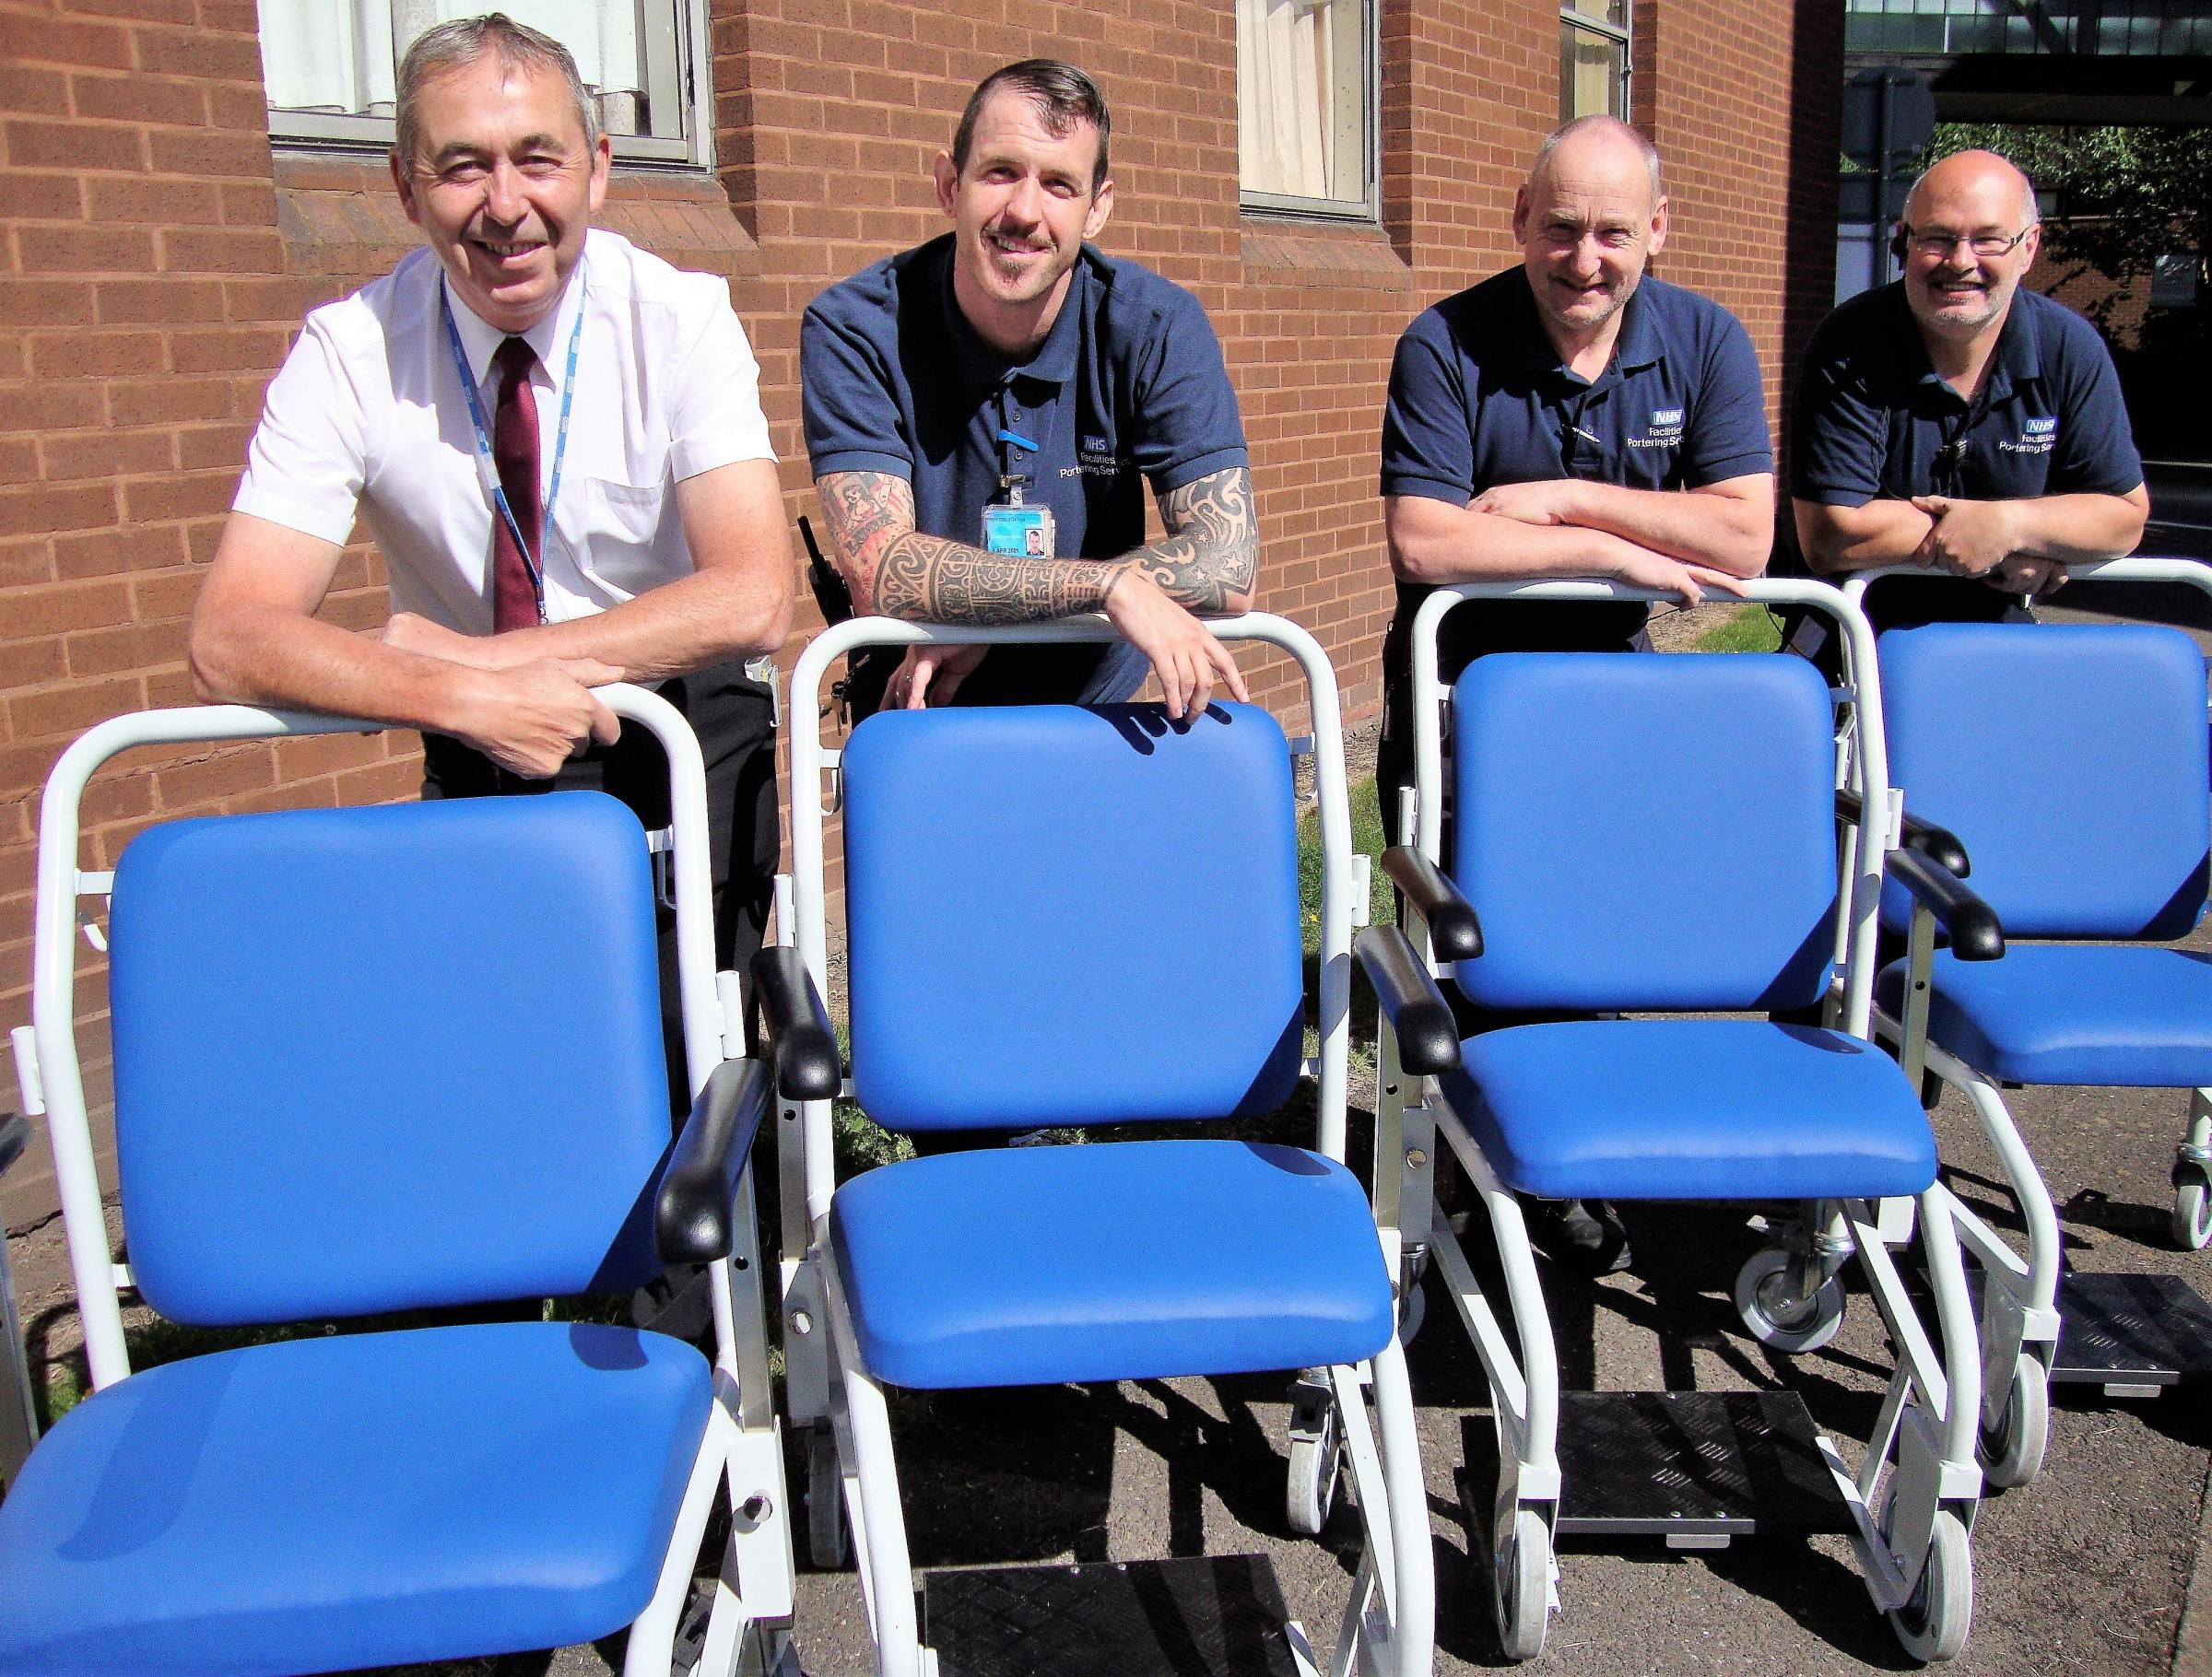 Portering supervisor Neville Cartwright, Chris George, Keith Palmer and Karl Morgan with the new wheelchairs